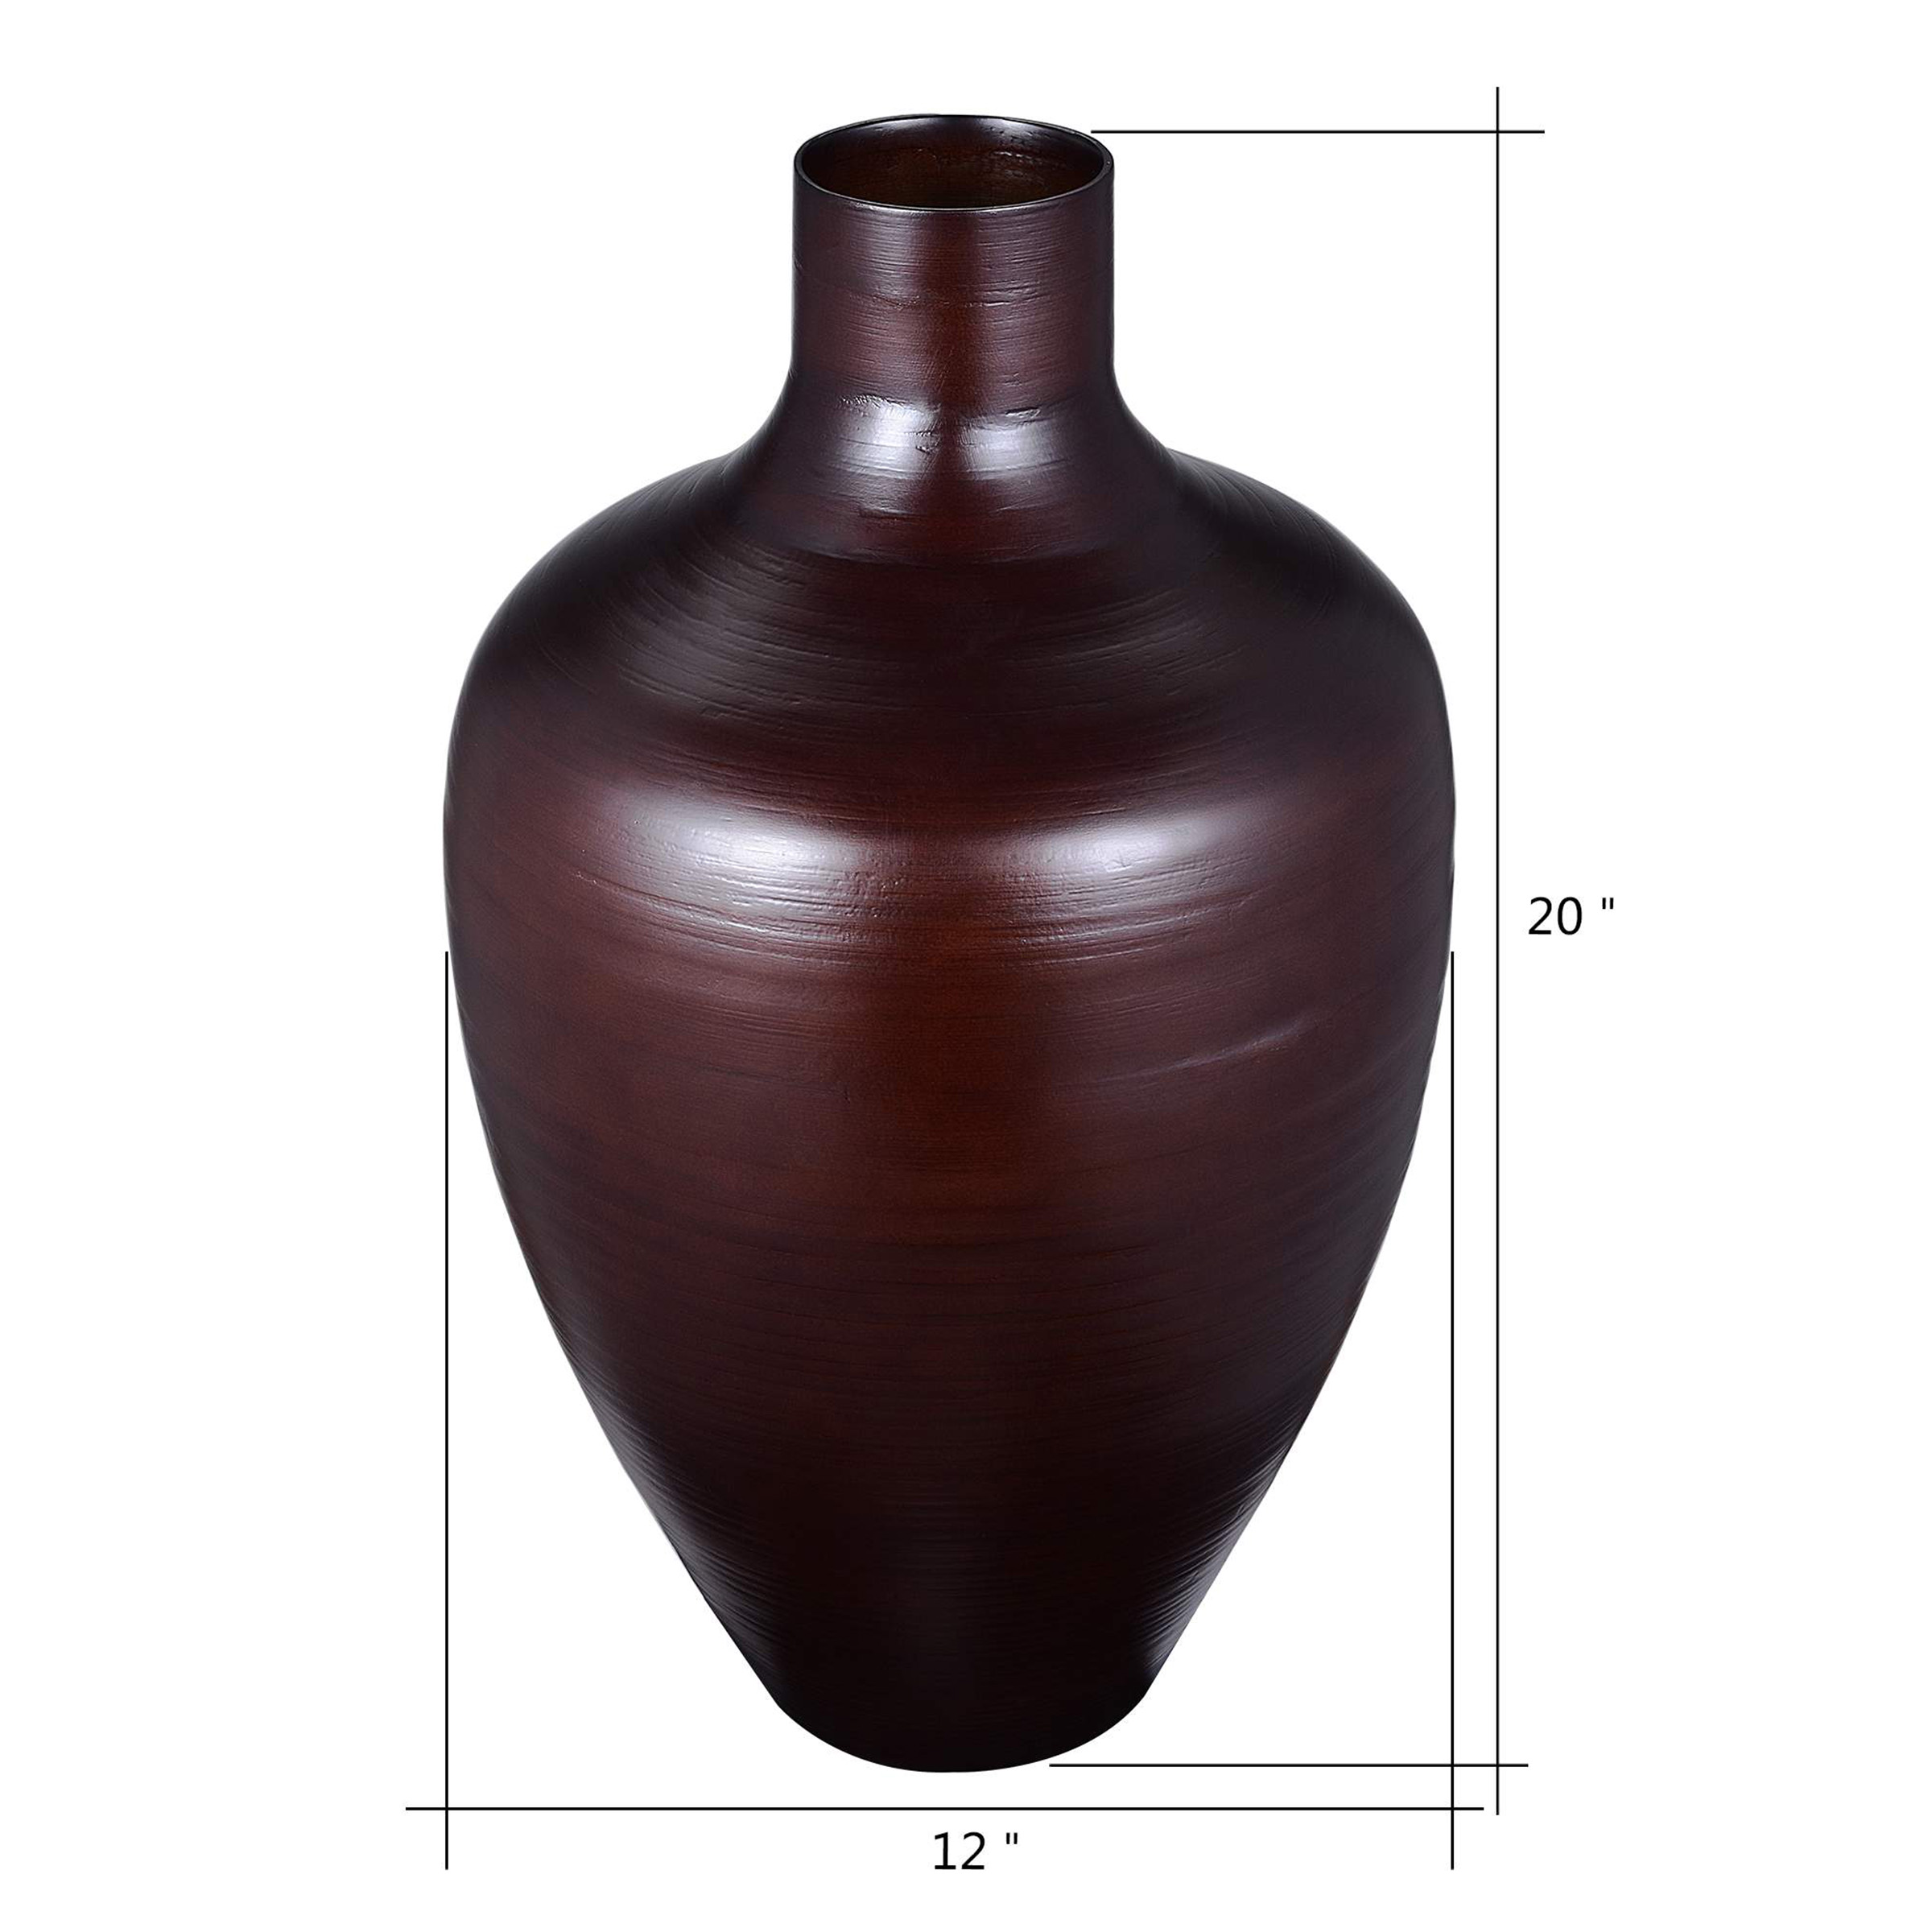 """Villacera Handcrafted 20"""" Tall Natural Bamboo Vase   Decorative Gourd Floor Vase for Silk Plants, Flowers, Filler Decor   Sustainable Bamboo"""